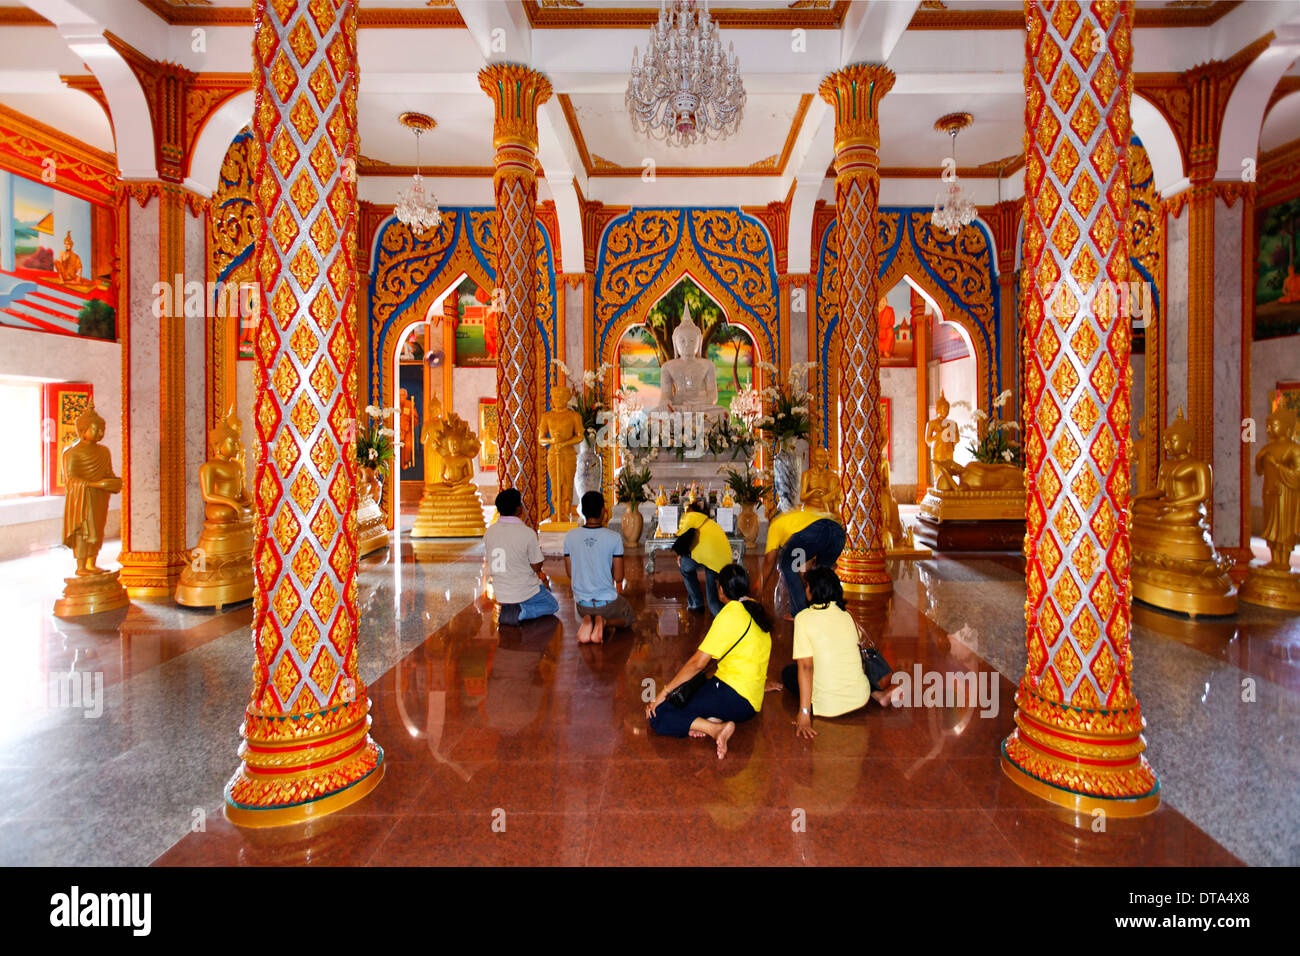 Visitors praying in front of the altar, columns, Wat Chalong temple, Phuket, Thailand - Stock Image